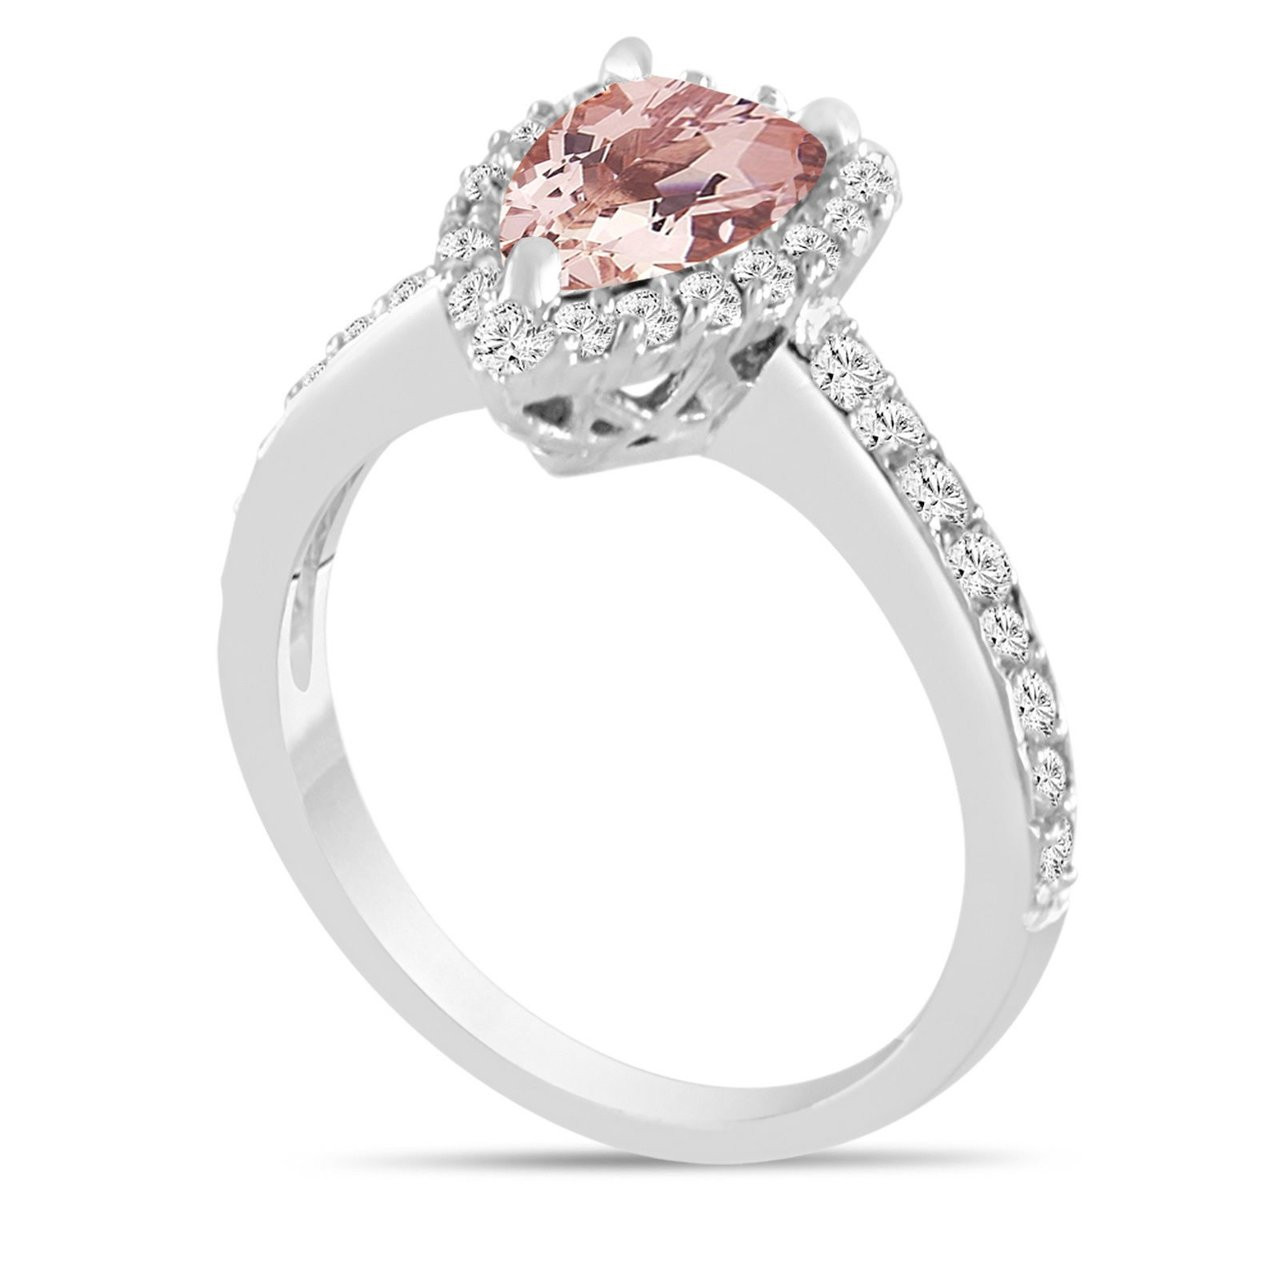 81390d1883642d Pear_Shape_Morganite_Engagement_Ring_Morganite_and_Diamonds_Wedding_Ring_14K_White_Gold_Certified_1.58_Carat_Pave_Halo_Unique_Handmade__31604.1535047445.  ...